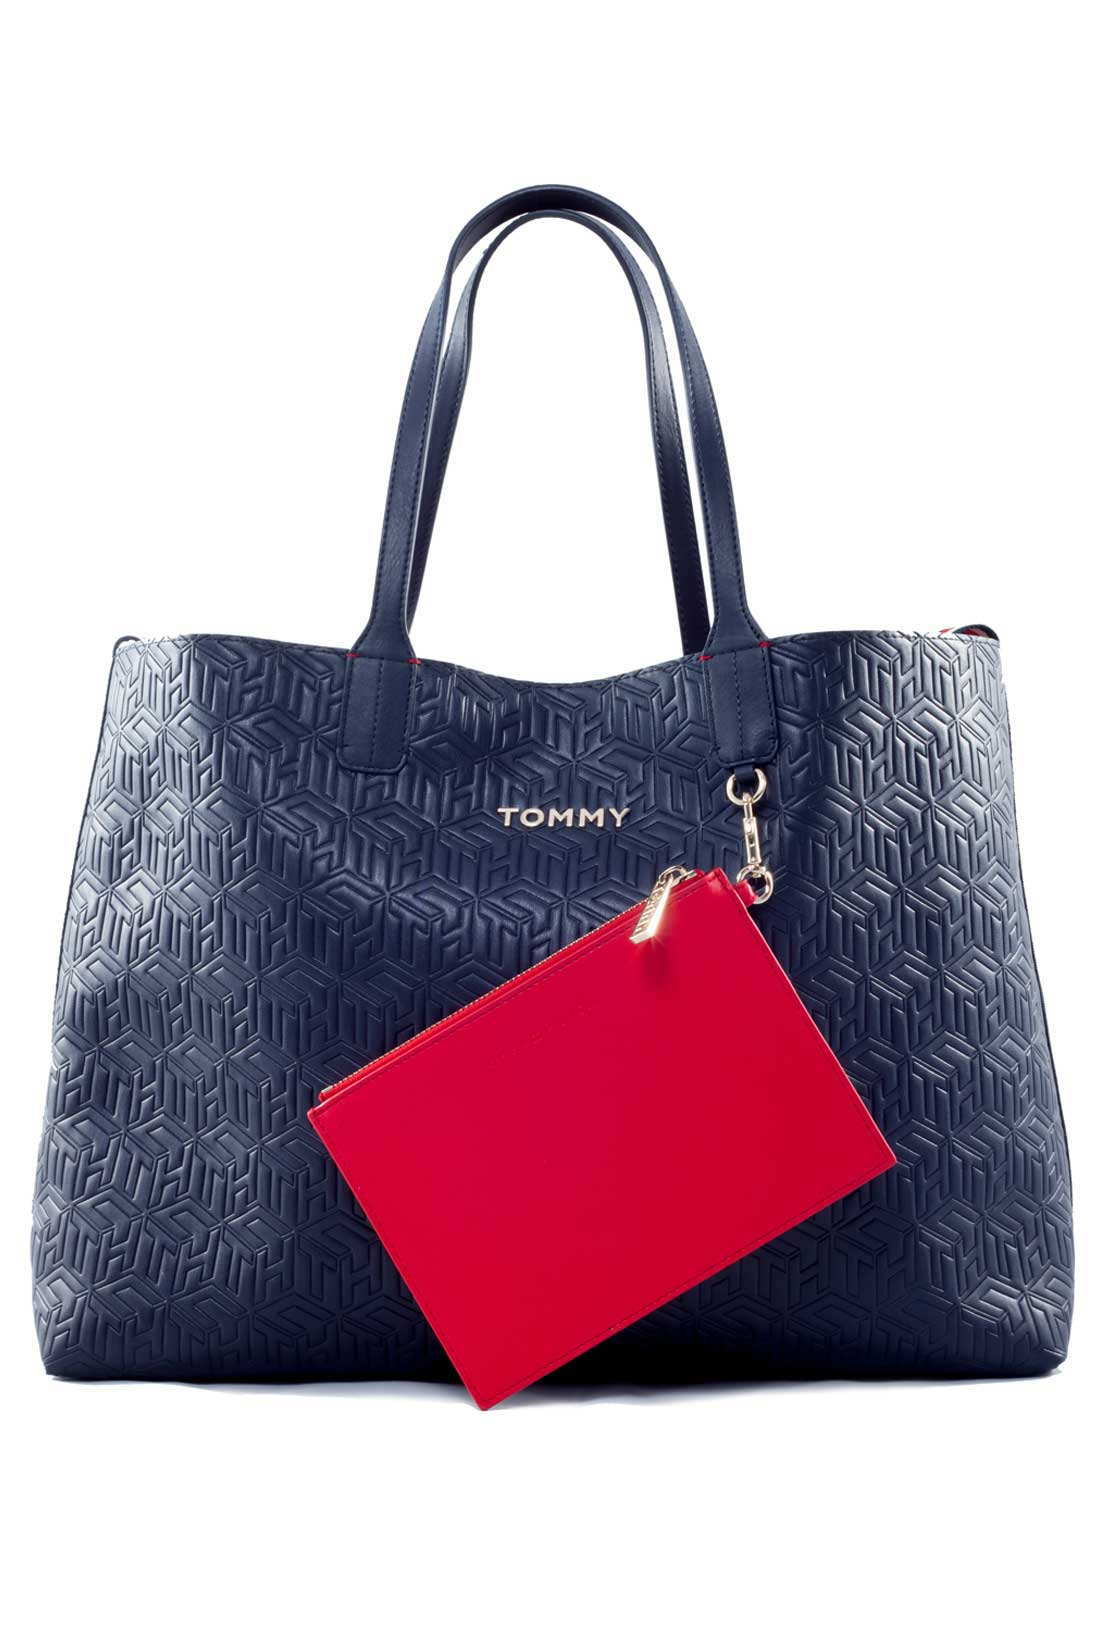 TOMMY HILFIGER Women's navy blue tote bag with monogram in relief